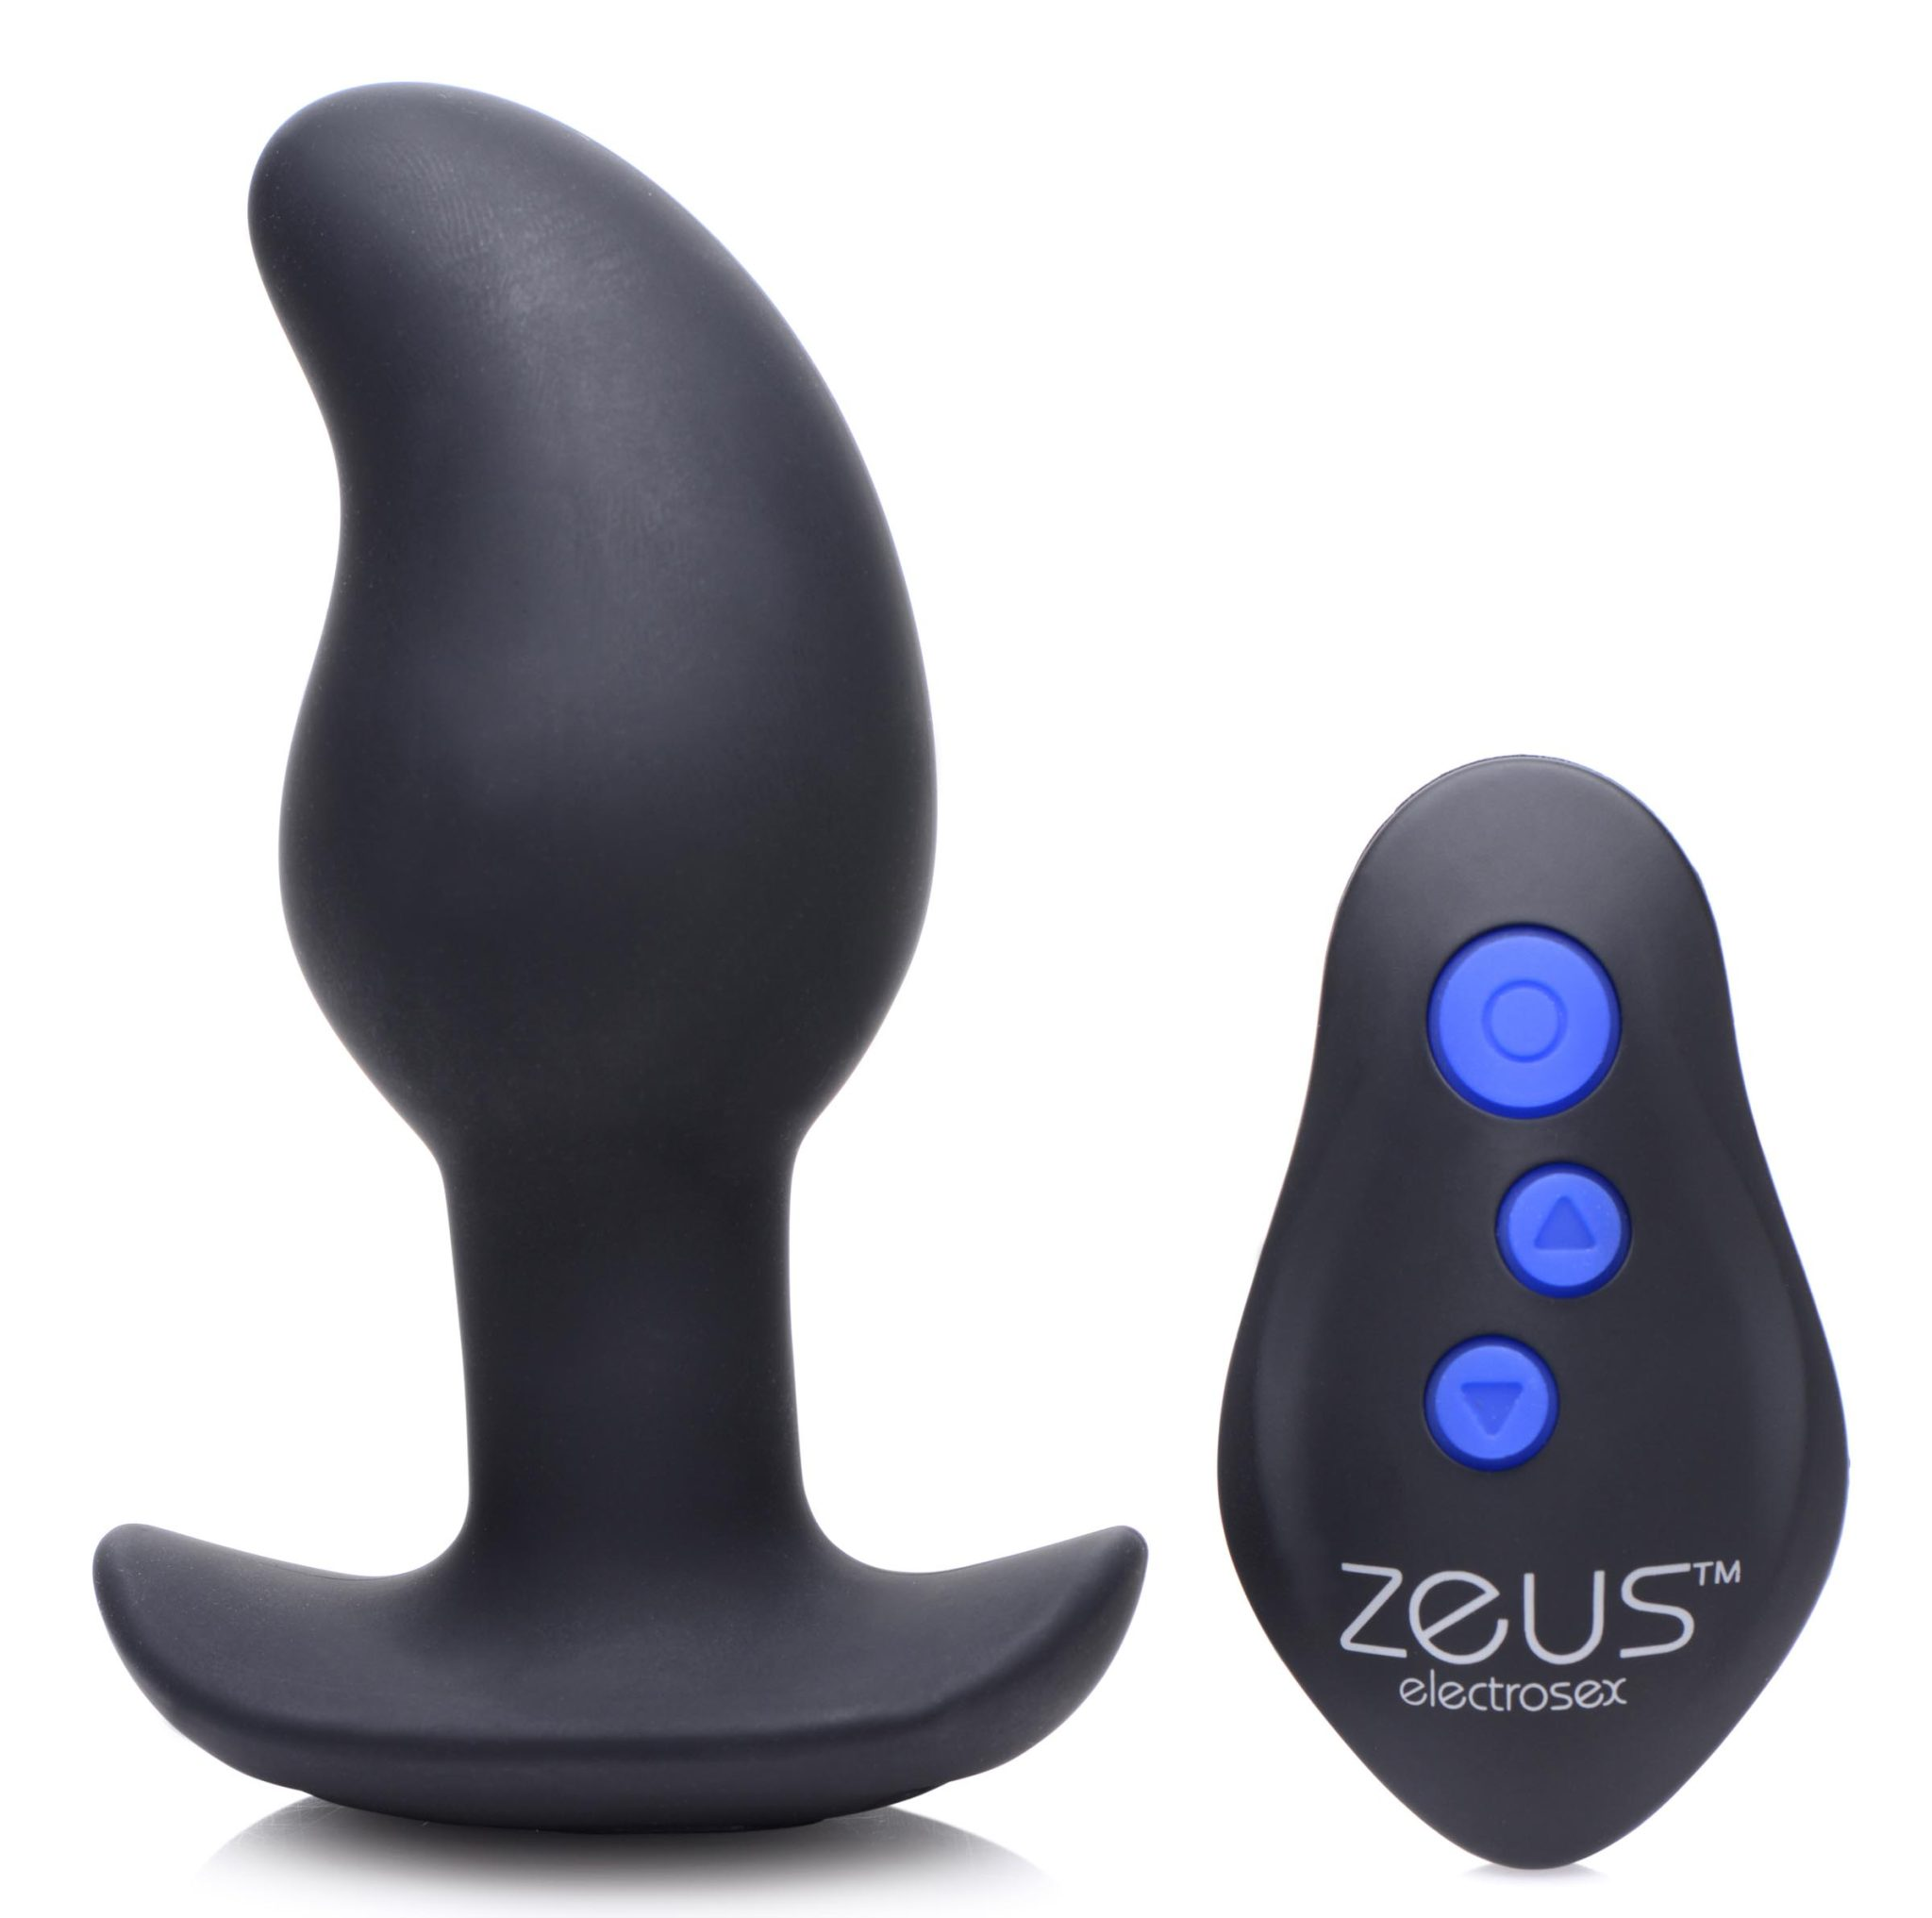 8X Volt Drop Vibrating and E-Stim Silicone Prostate Massager with Remote